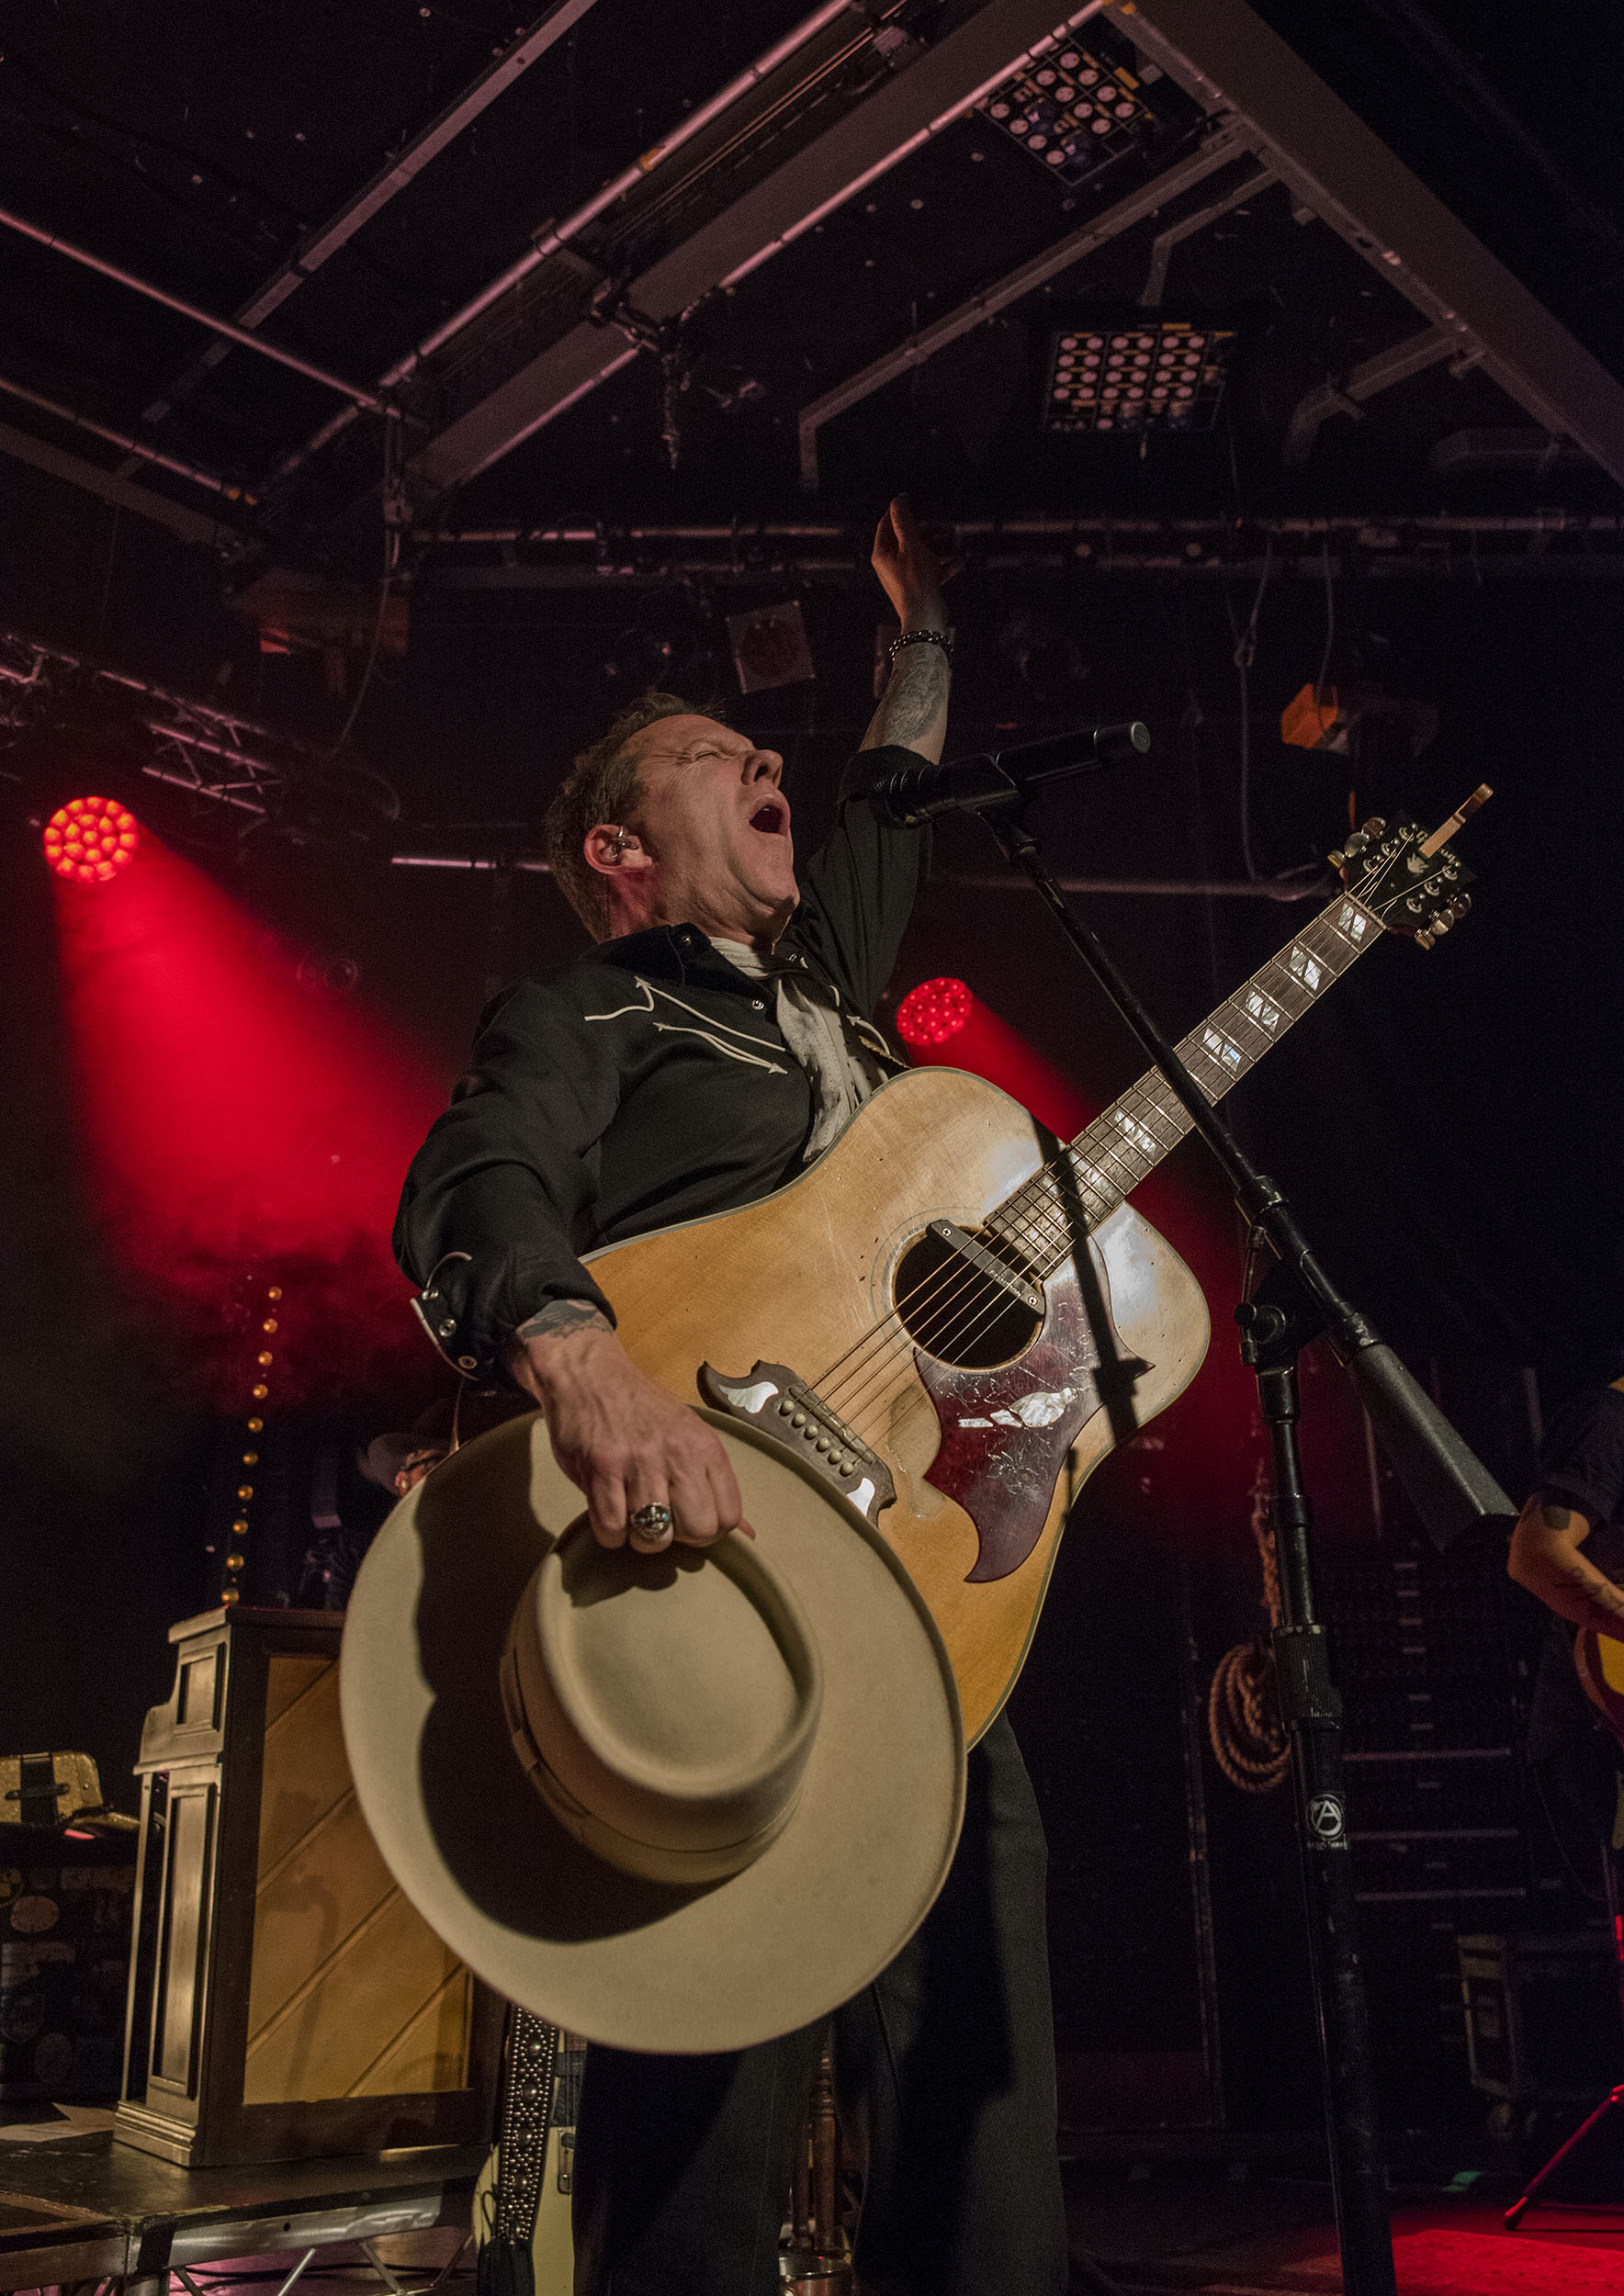 Kiefer Sutherland @ Cambridge Junction 26/02/2020